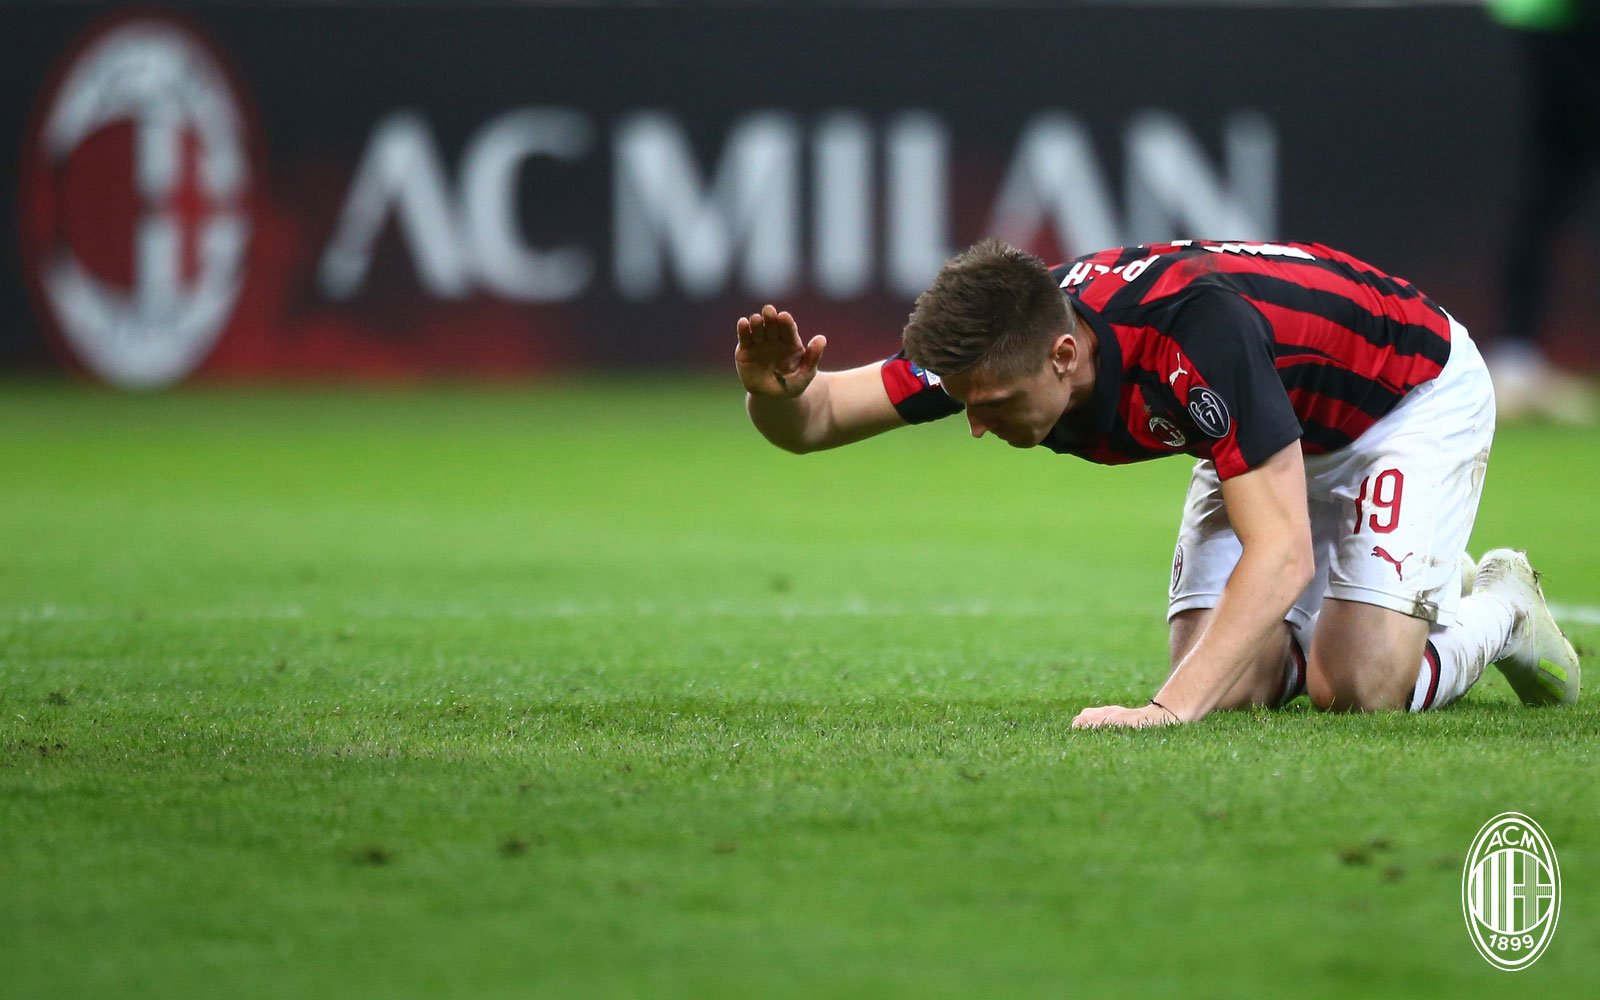 Krzysztof Piątek during Milan-Lazio at Stadio San Siro on April 24, 2019. (@acmilan.com)